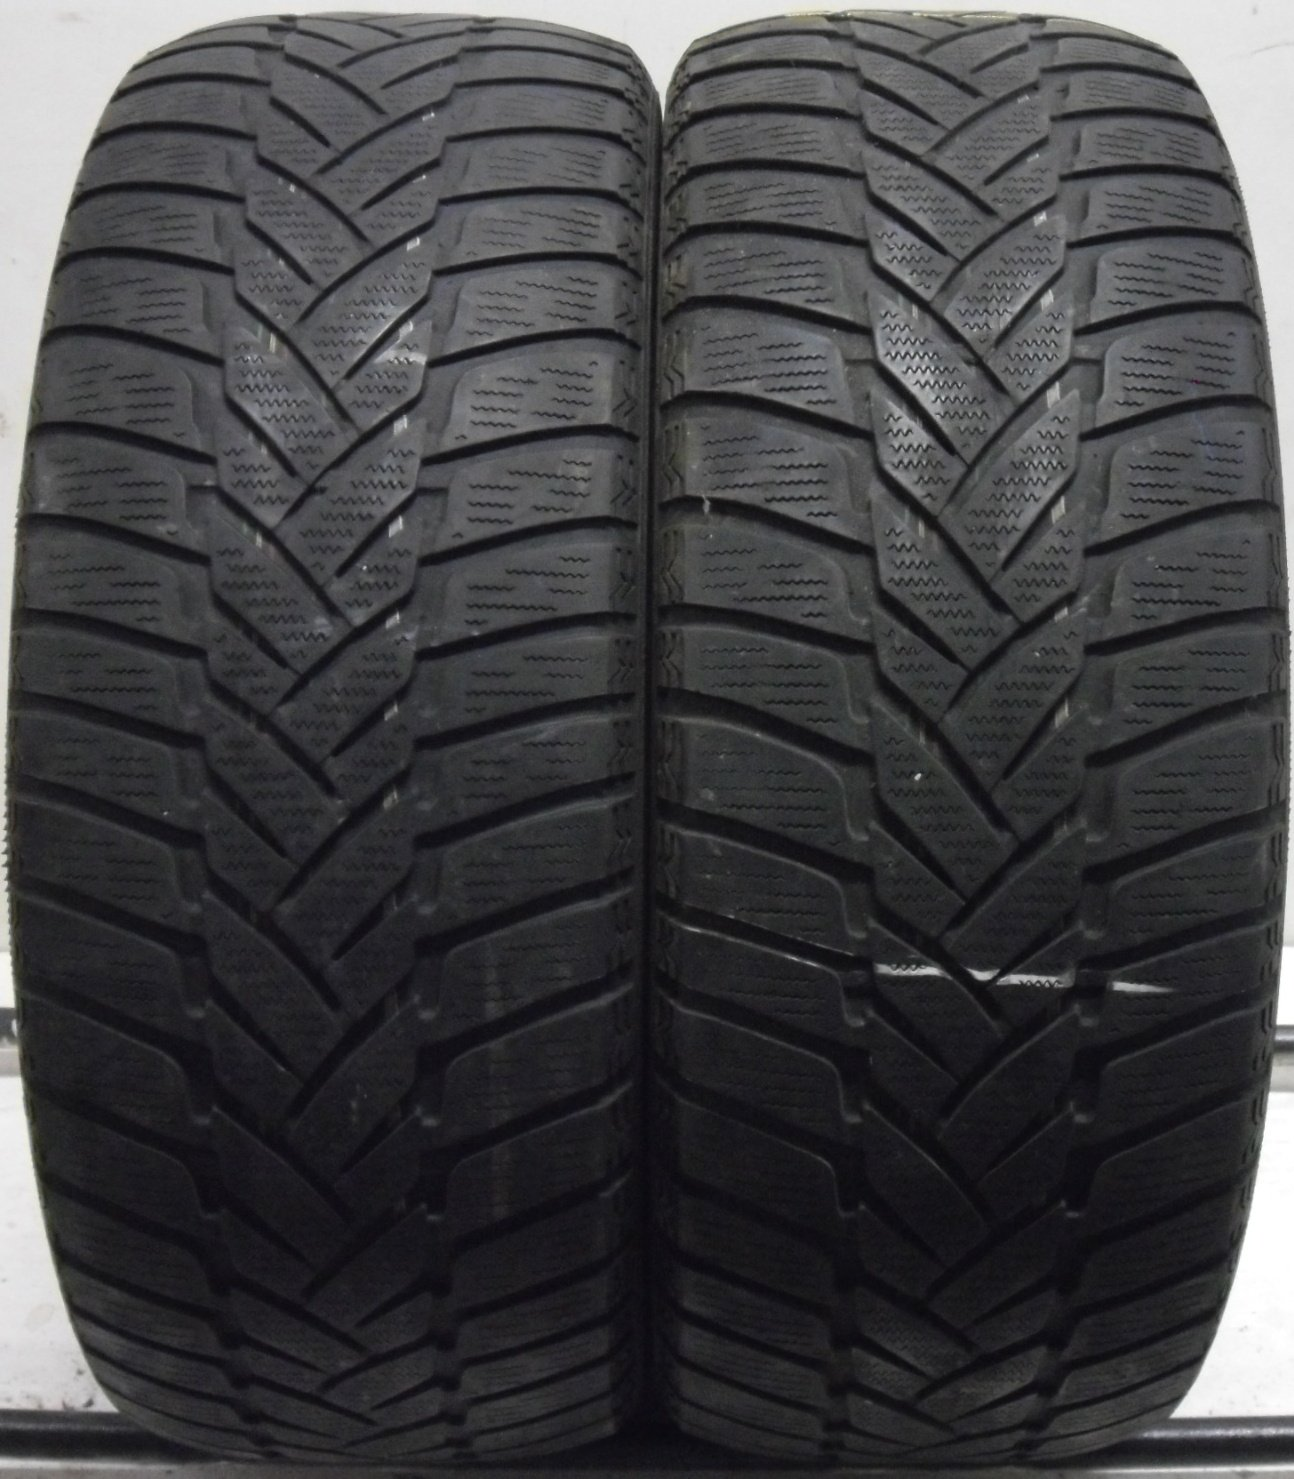 2 2355517 Dunlop 235 55 17 Part Worn Car Tyres SP WINTER SNOW Sport M3 x2 Two 4mm to 4.5mm